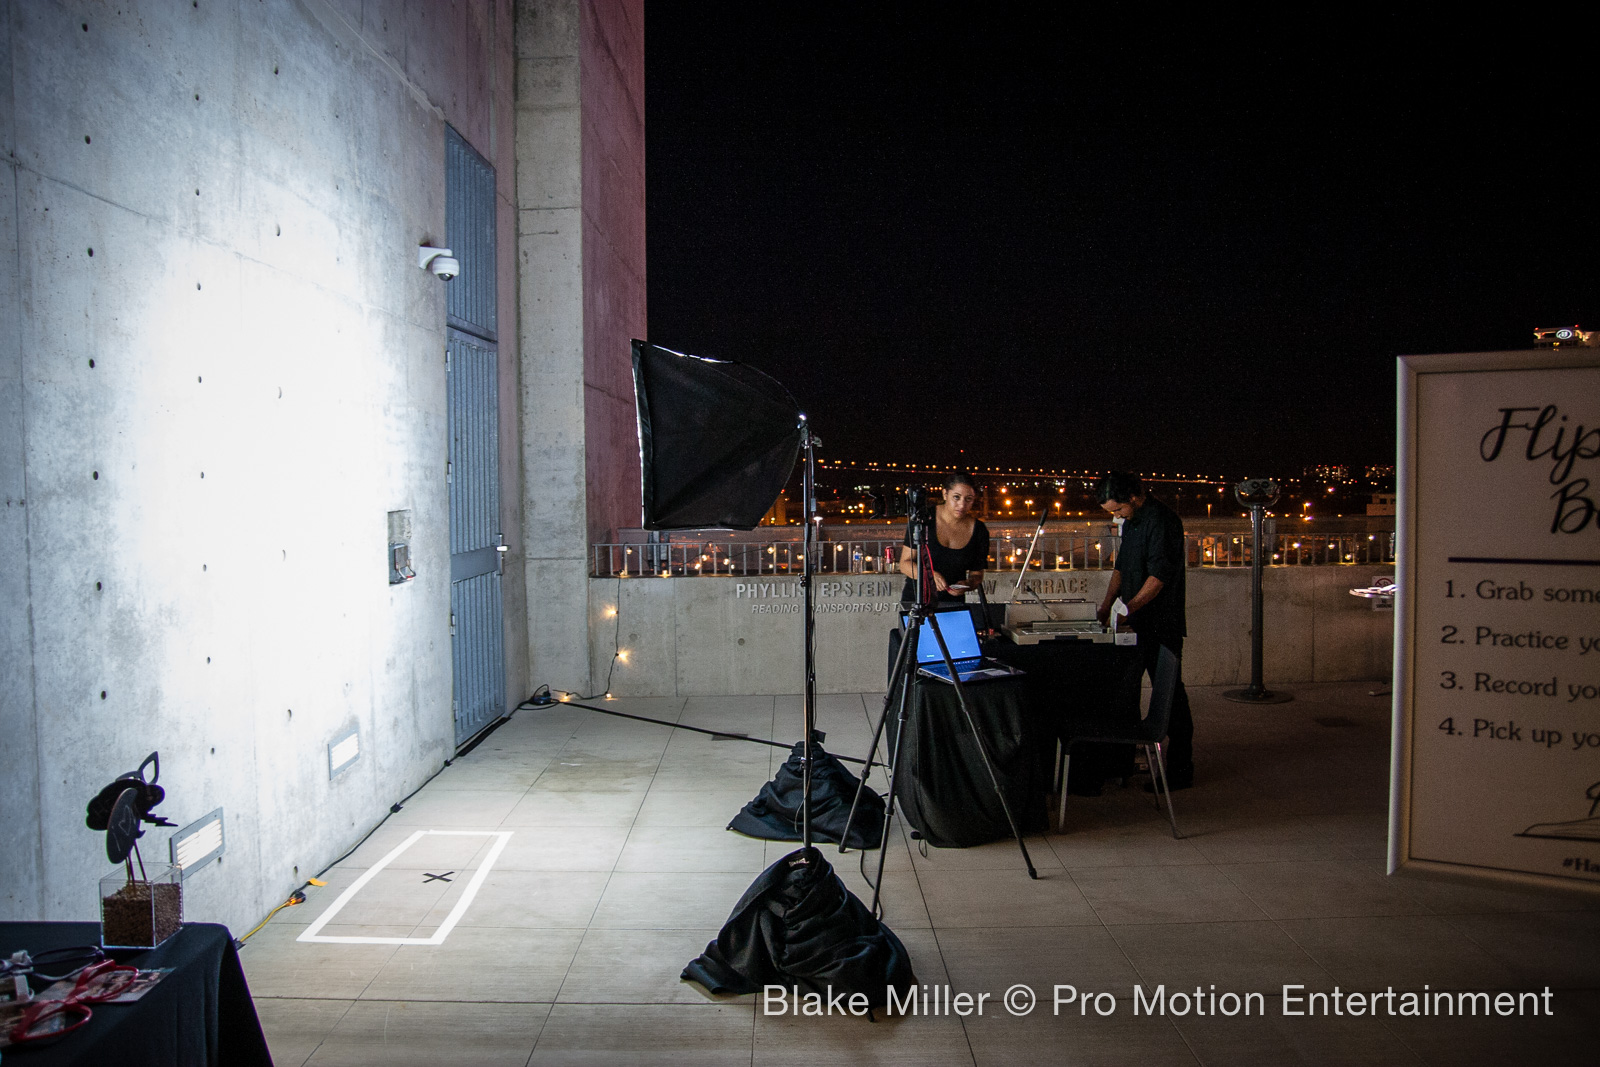 San-Diego-Public-Library-Wedding-DJ-Lighting